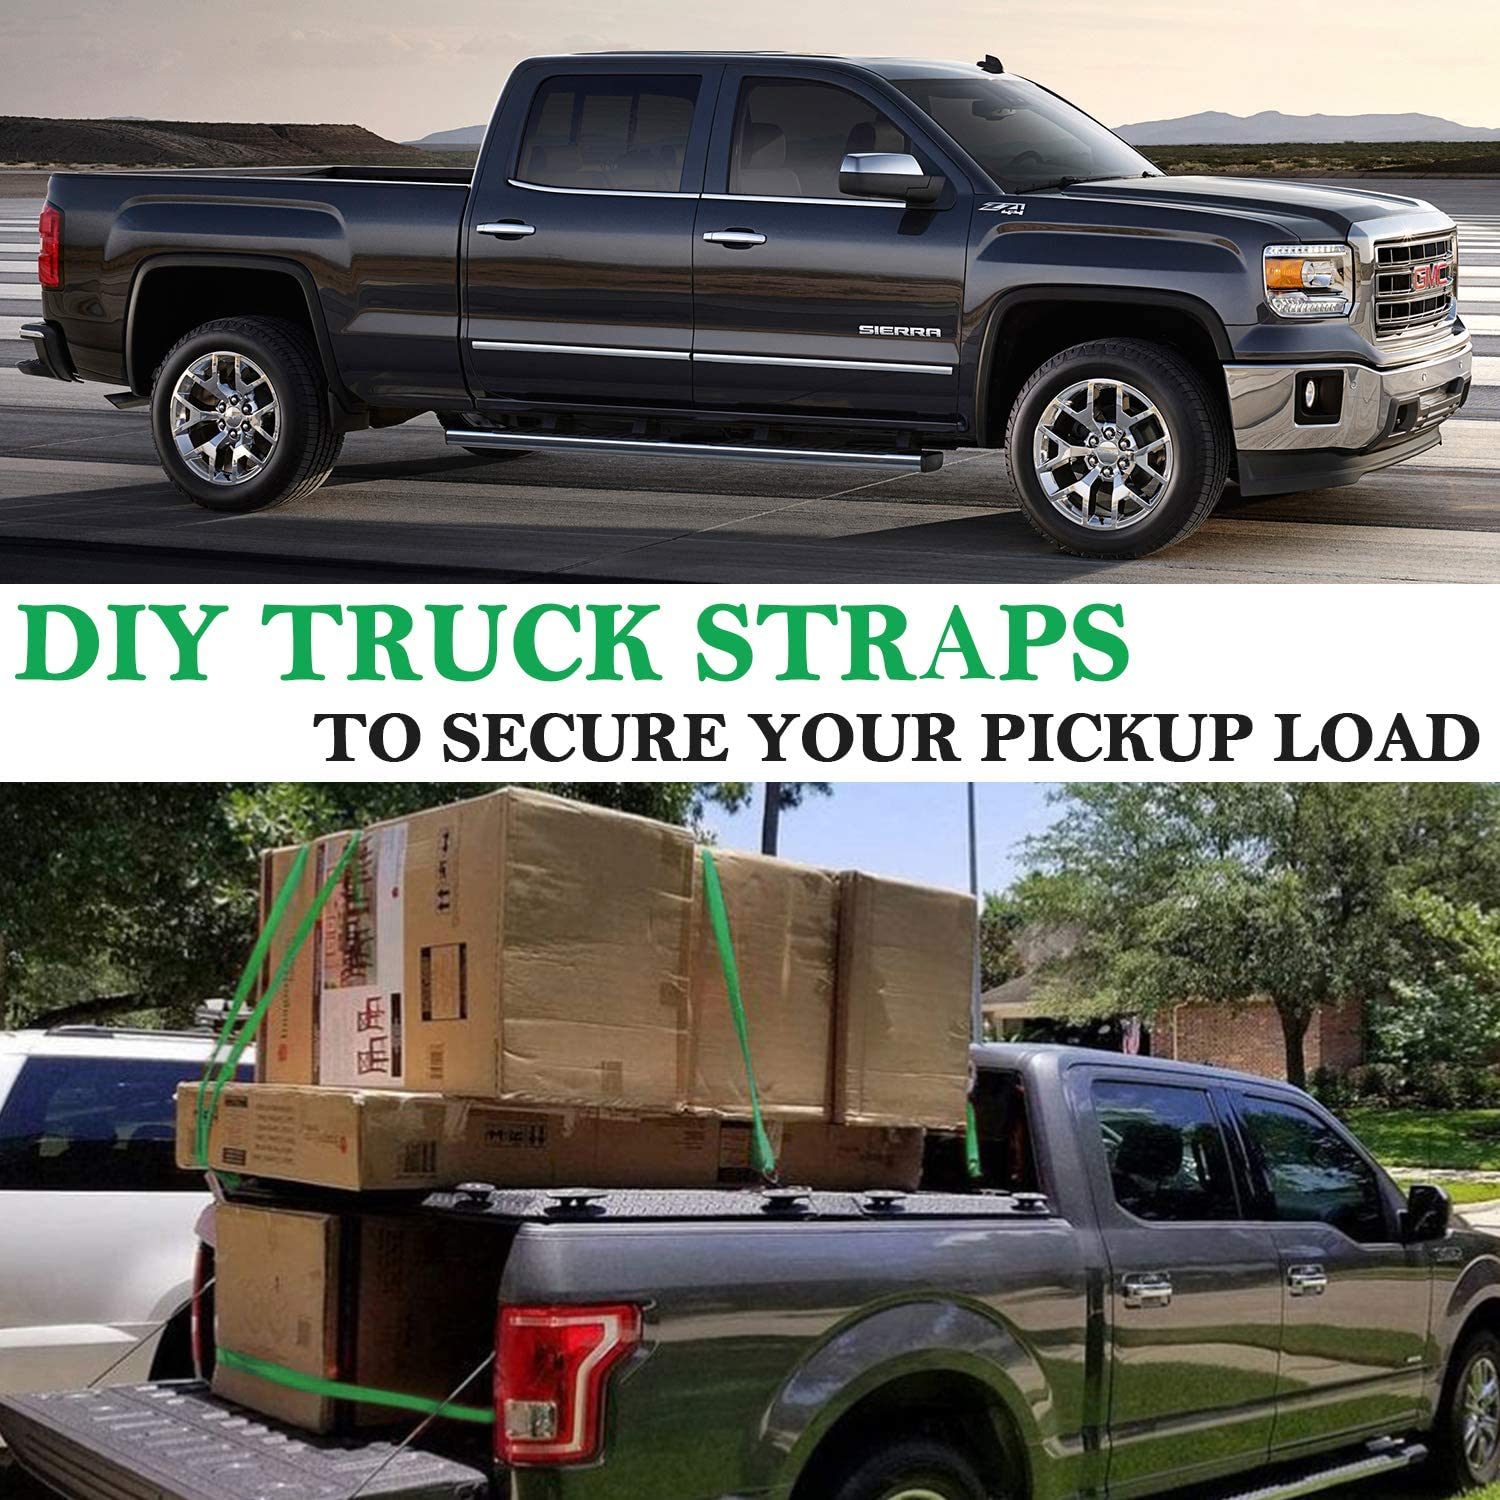 Trucks Motorcycle Trailer WinPower Ratchet Tie Down Straps 4 x 12Ft Securing Straps 1000lb Load Cap 3000lb Break Strength with S Hook for Cargo Moving